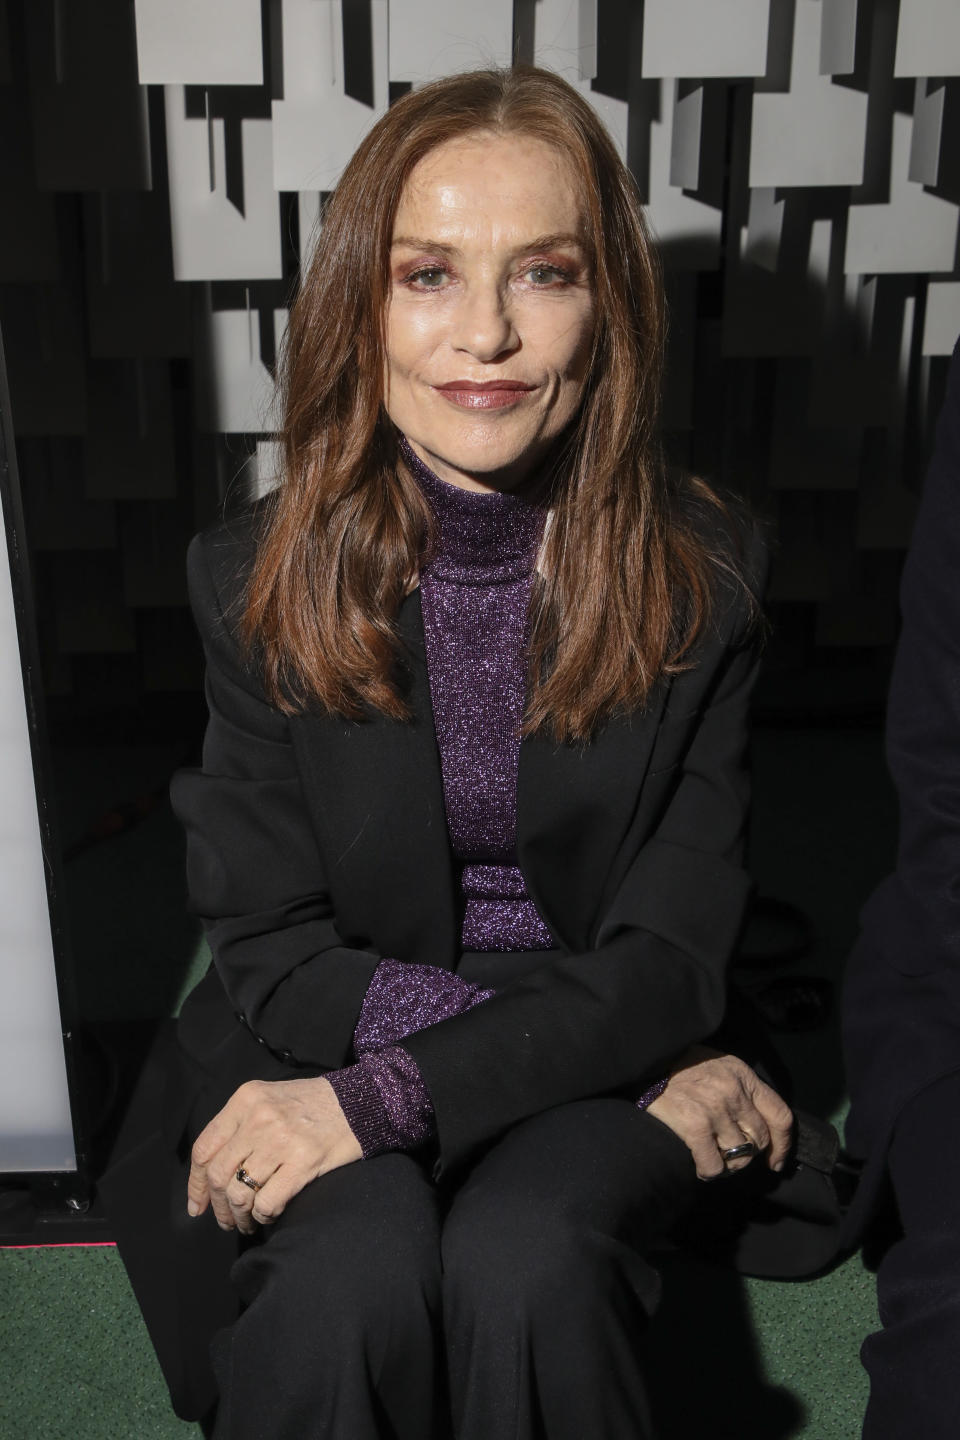 Isabelle Huppert attends the Stella McCartney Spring-Summer 2022 ready-to-wear fashion show presented in Paris, Monday, Oct. 4, 2021. (Photo by Vianney Le Caer/Invision/AP)